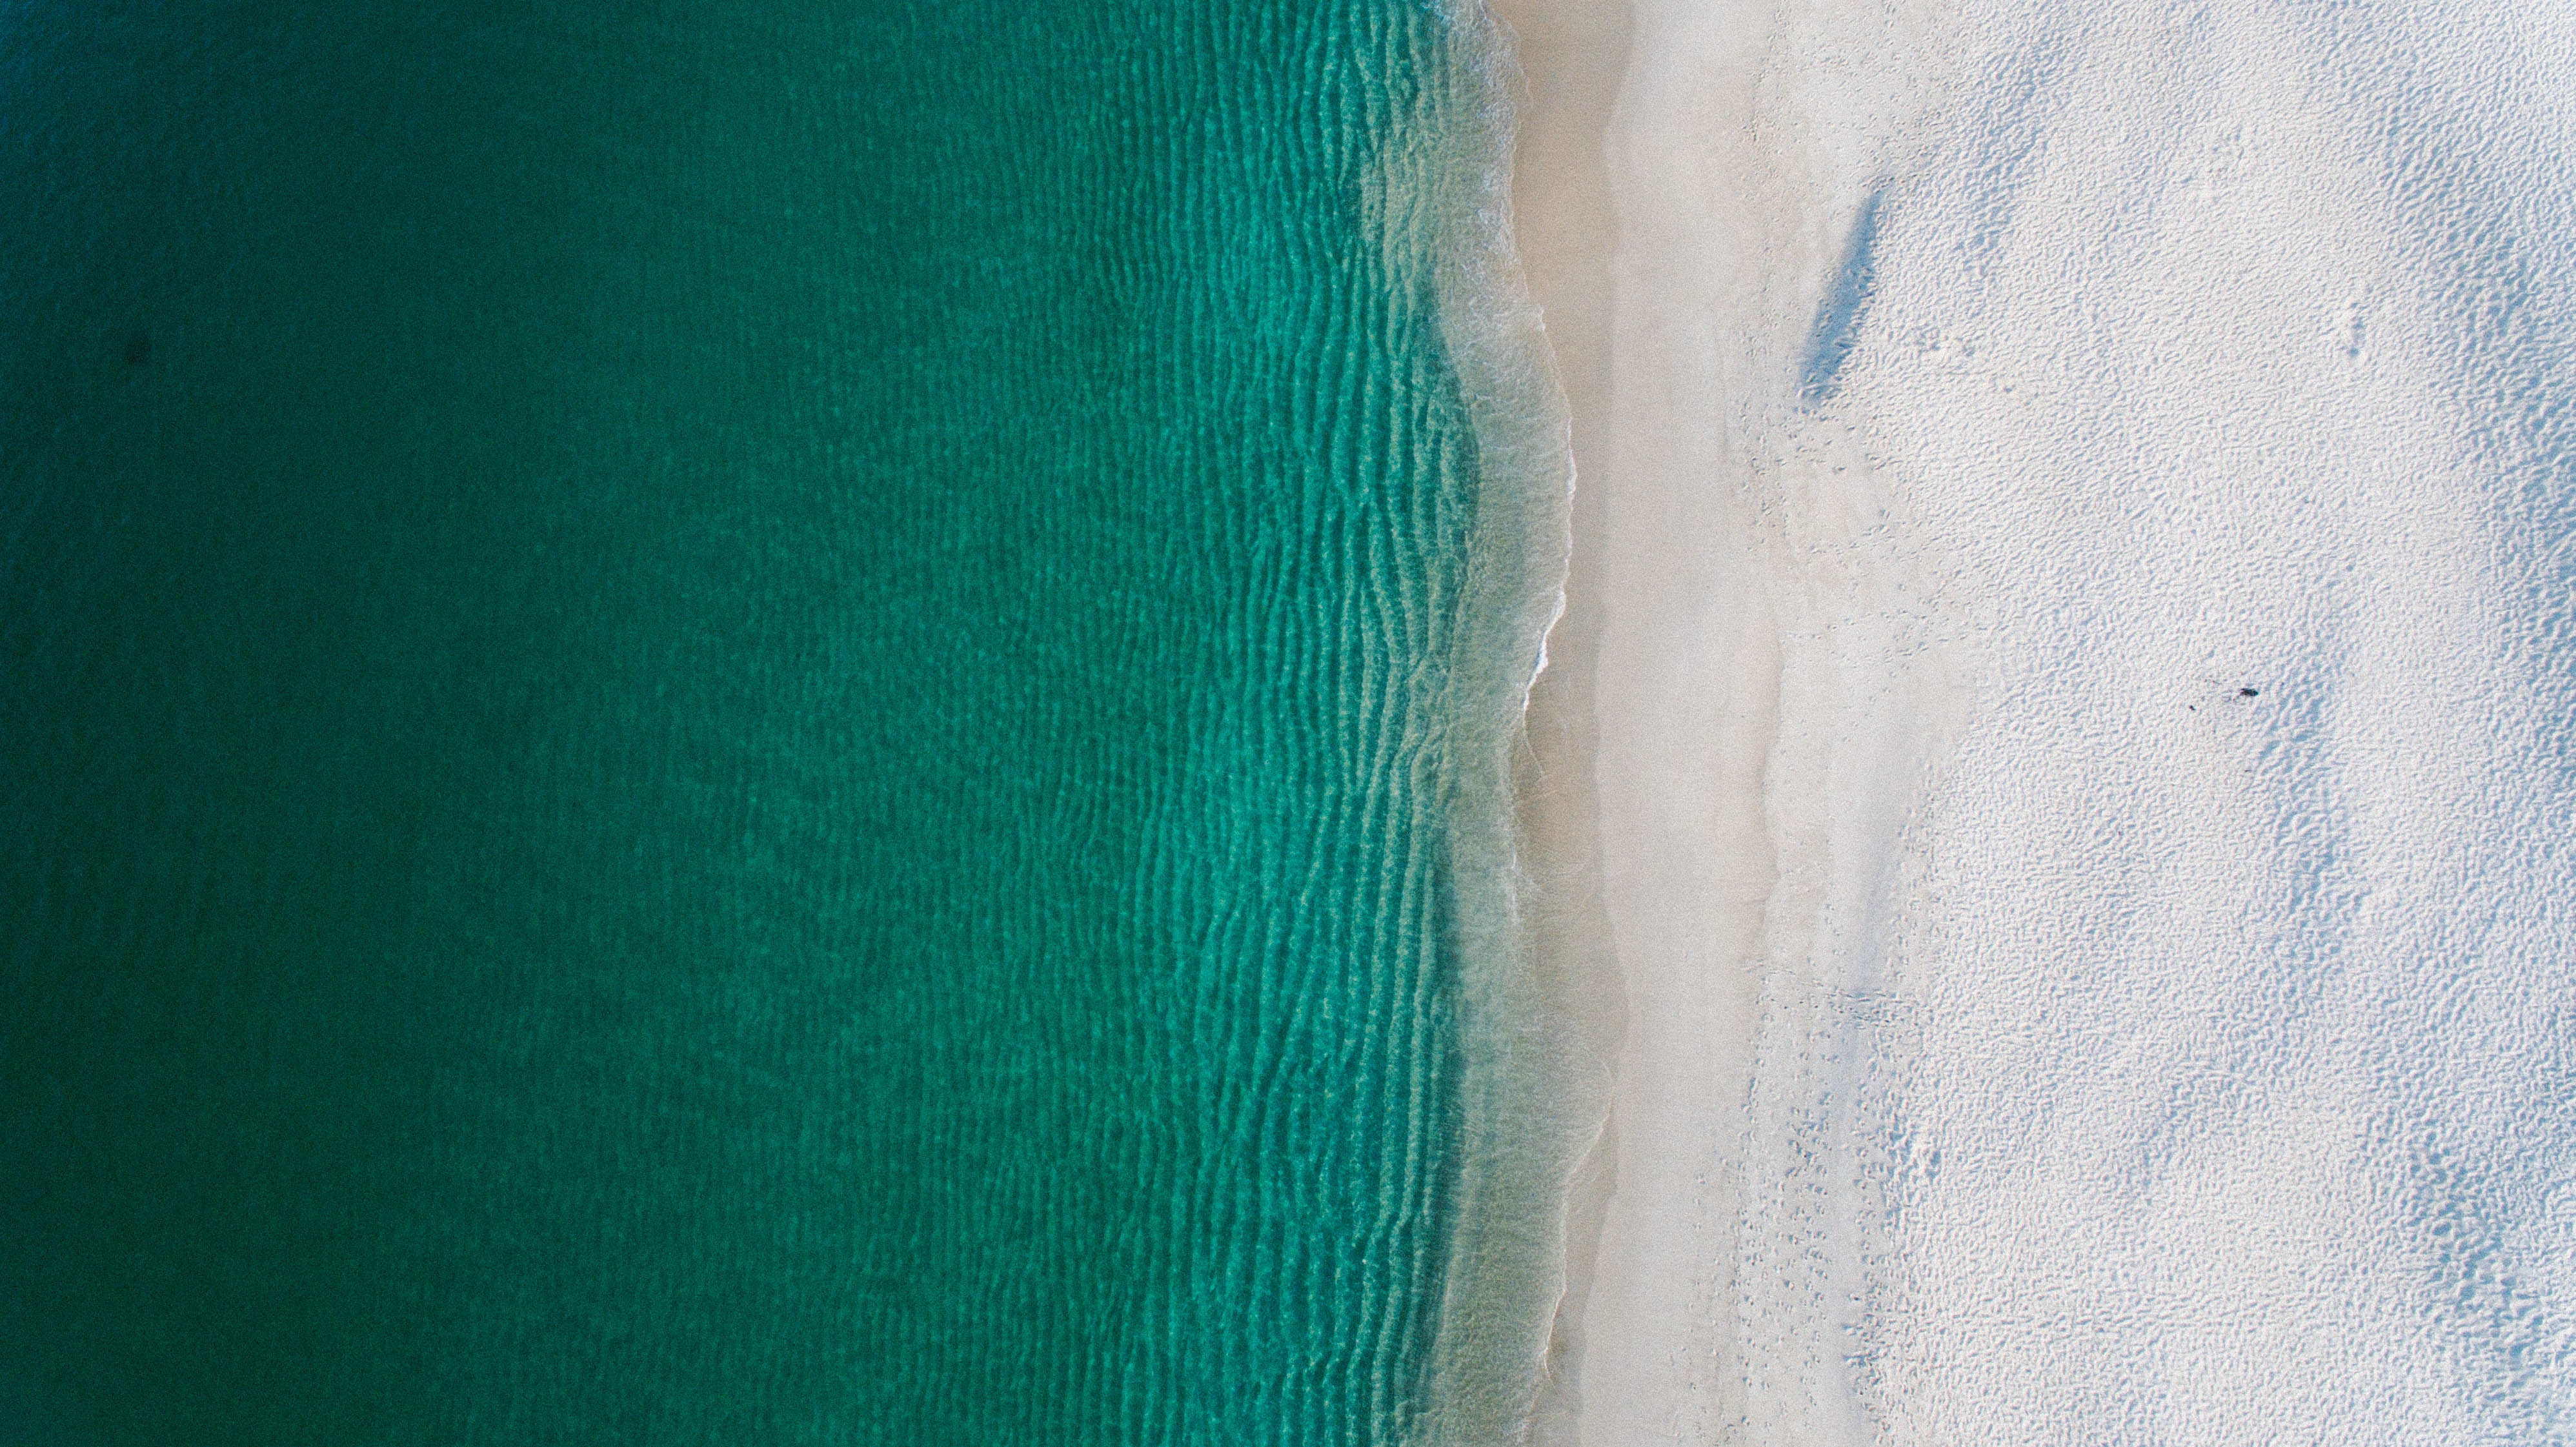 Silver sand beach and turquoise water 55684